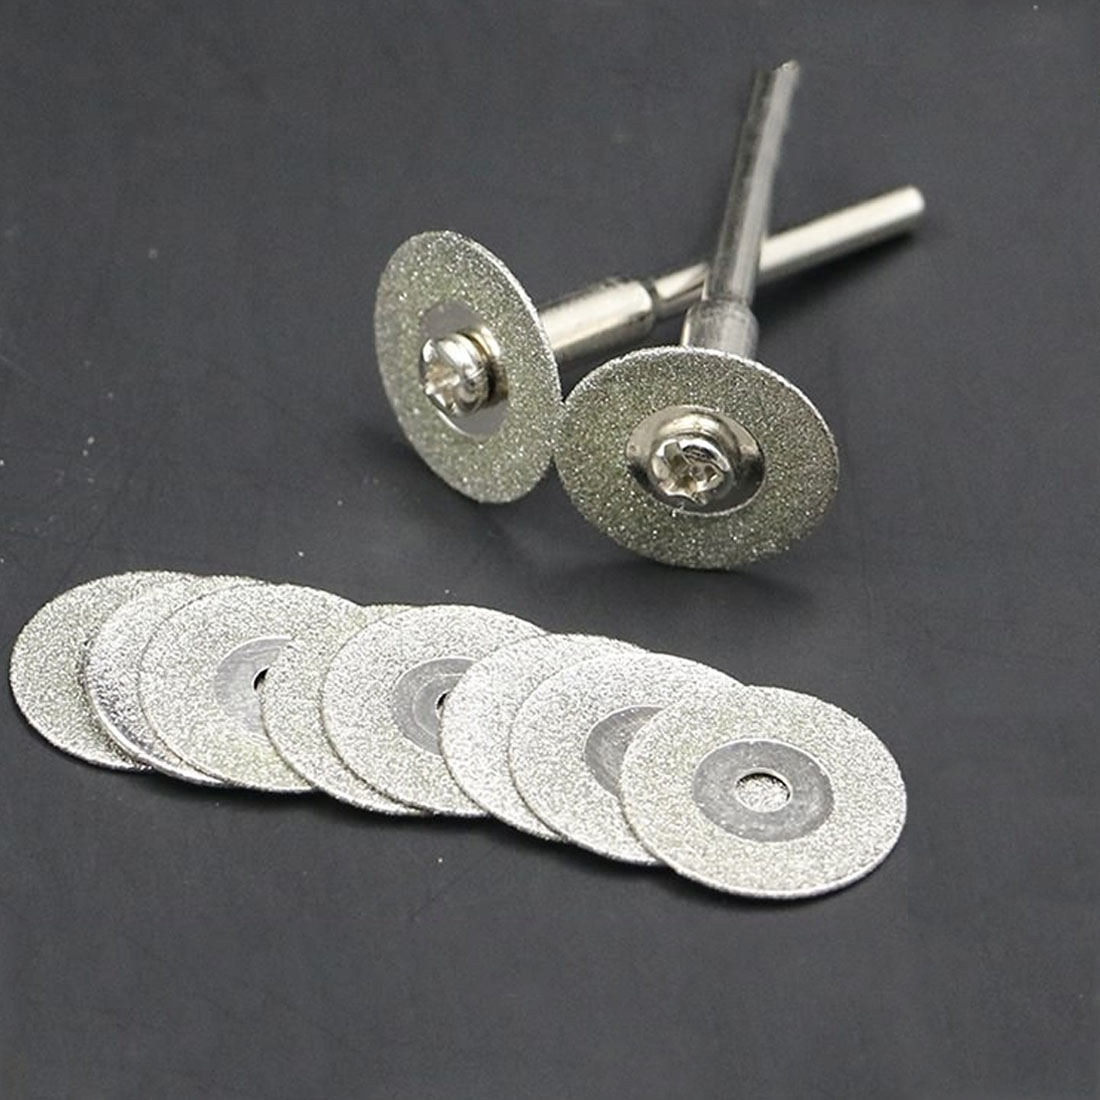 60mm Diamond Cutting Disc for Mini Drill Dremel Tools Diamond Disc Steel Rotary Tool Circular Saw Abrasive Saw Blade l7805cv to220